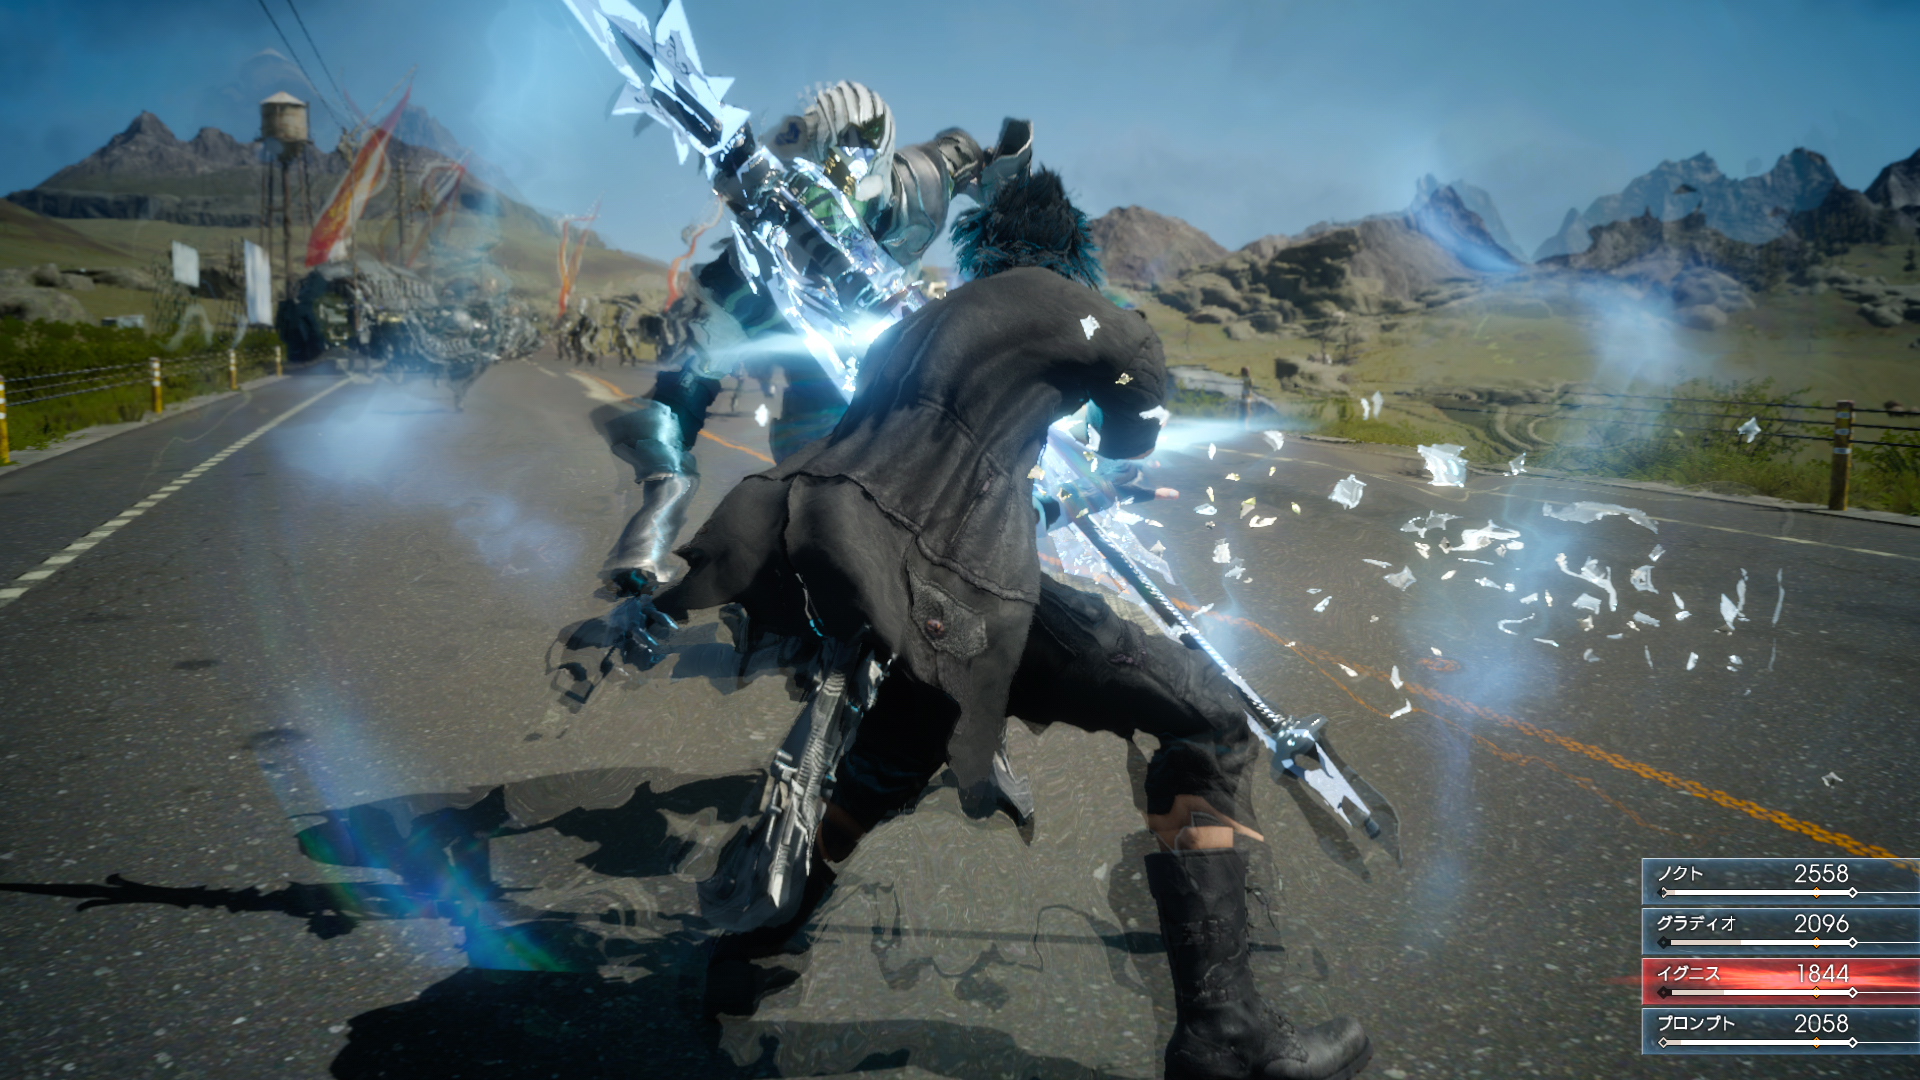 final fantasy xv gameplay still